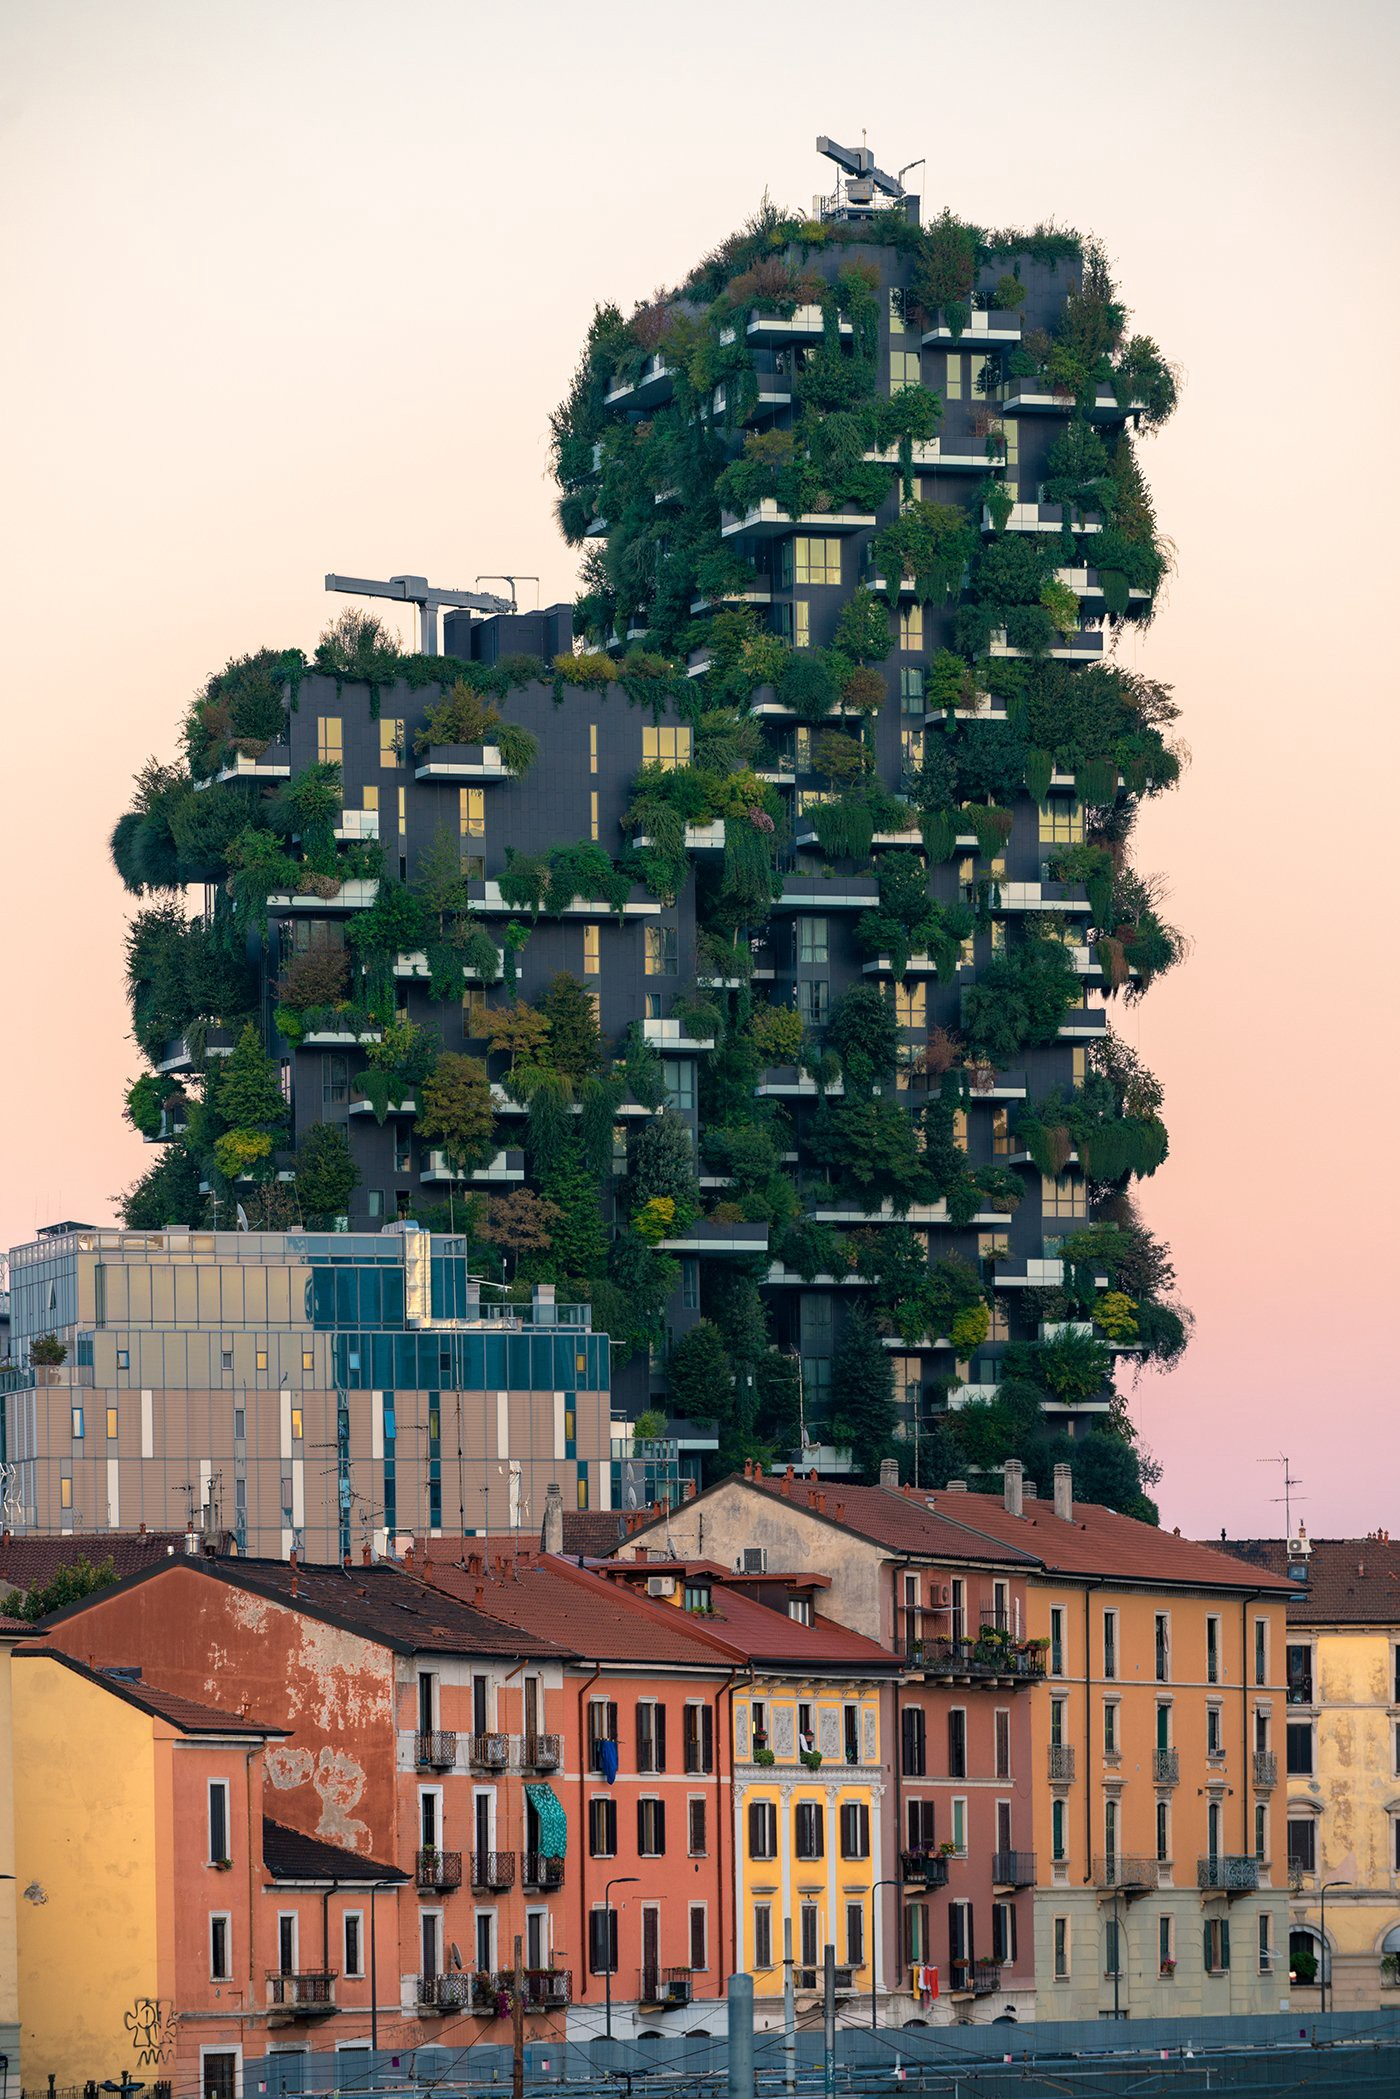 Representing a new urban habitat, Bosco Verticale ( Vertical Forest) is a pioneering prototype for the future of green housing. Measuring 80 and 112 meters (262 and 367 feet) in height, the towers support almost 800 trees. (Photo: Stefano Boeri Architetti, Evergreen Architecture)